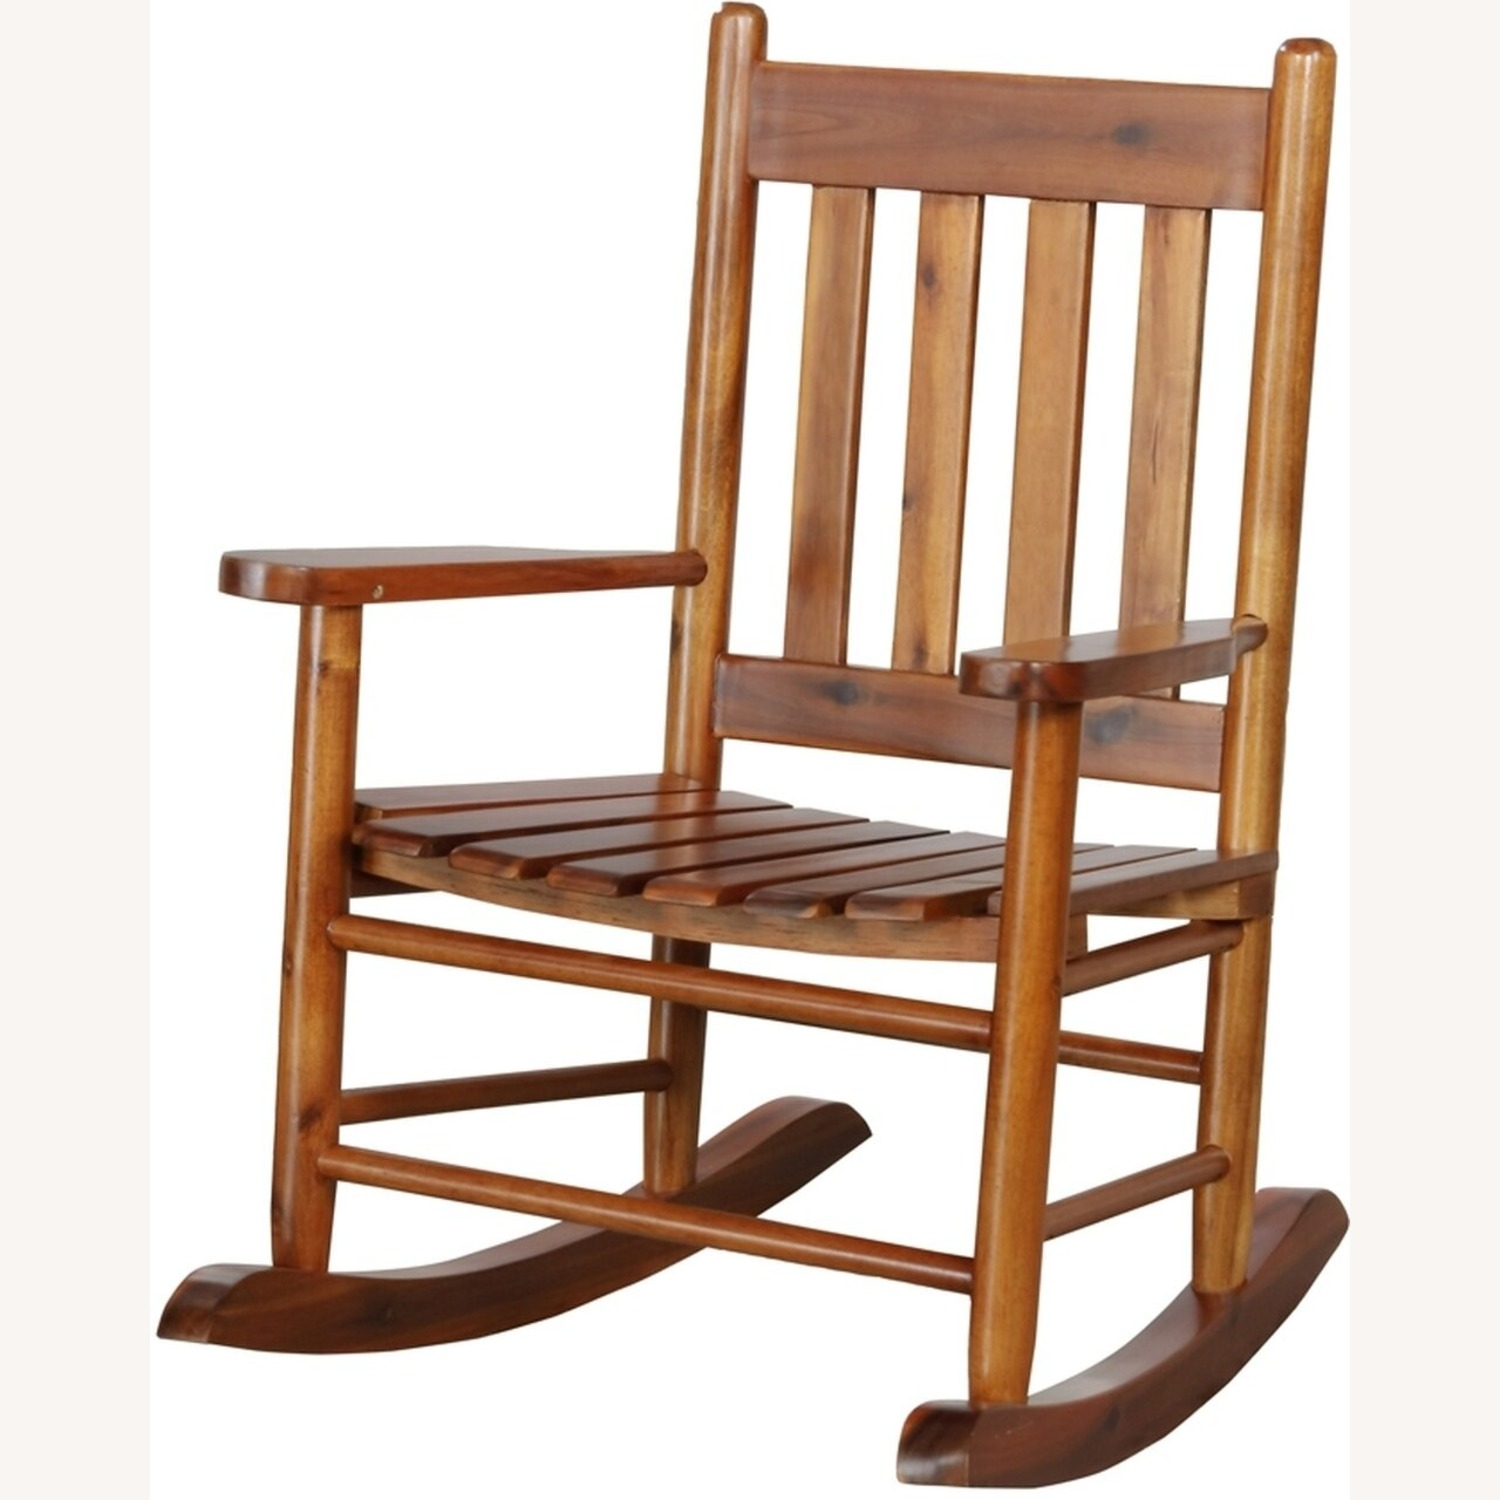 Kid's Rocking Chair In Golden Brown Finish - image-1